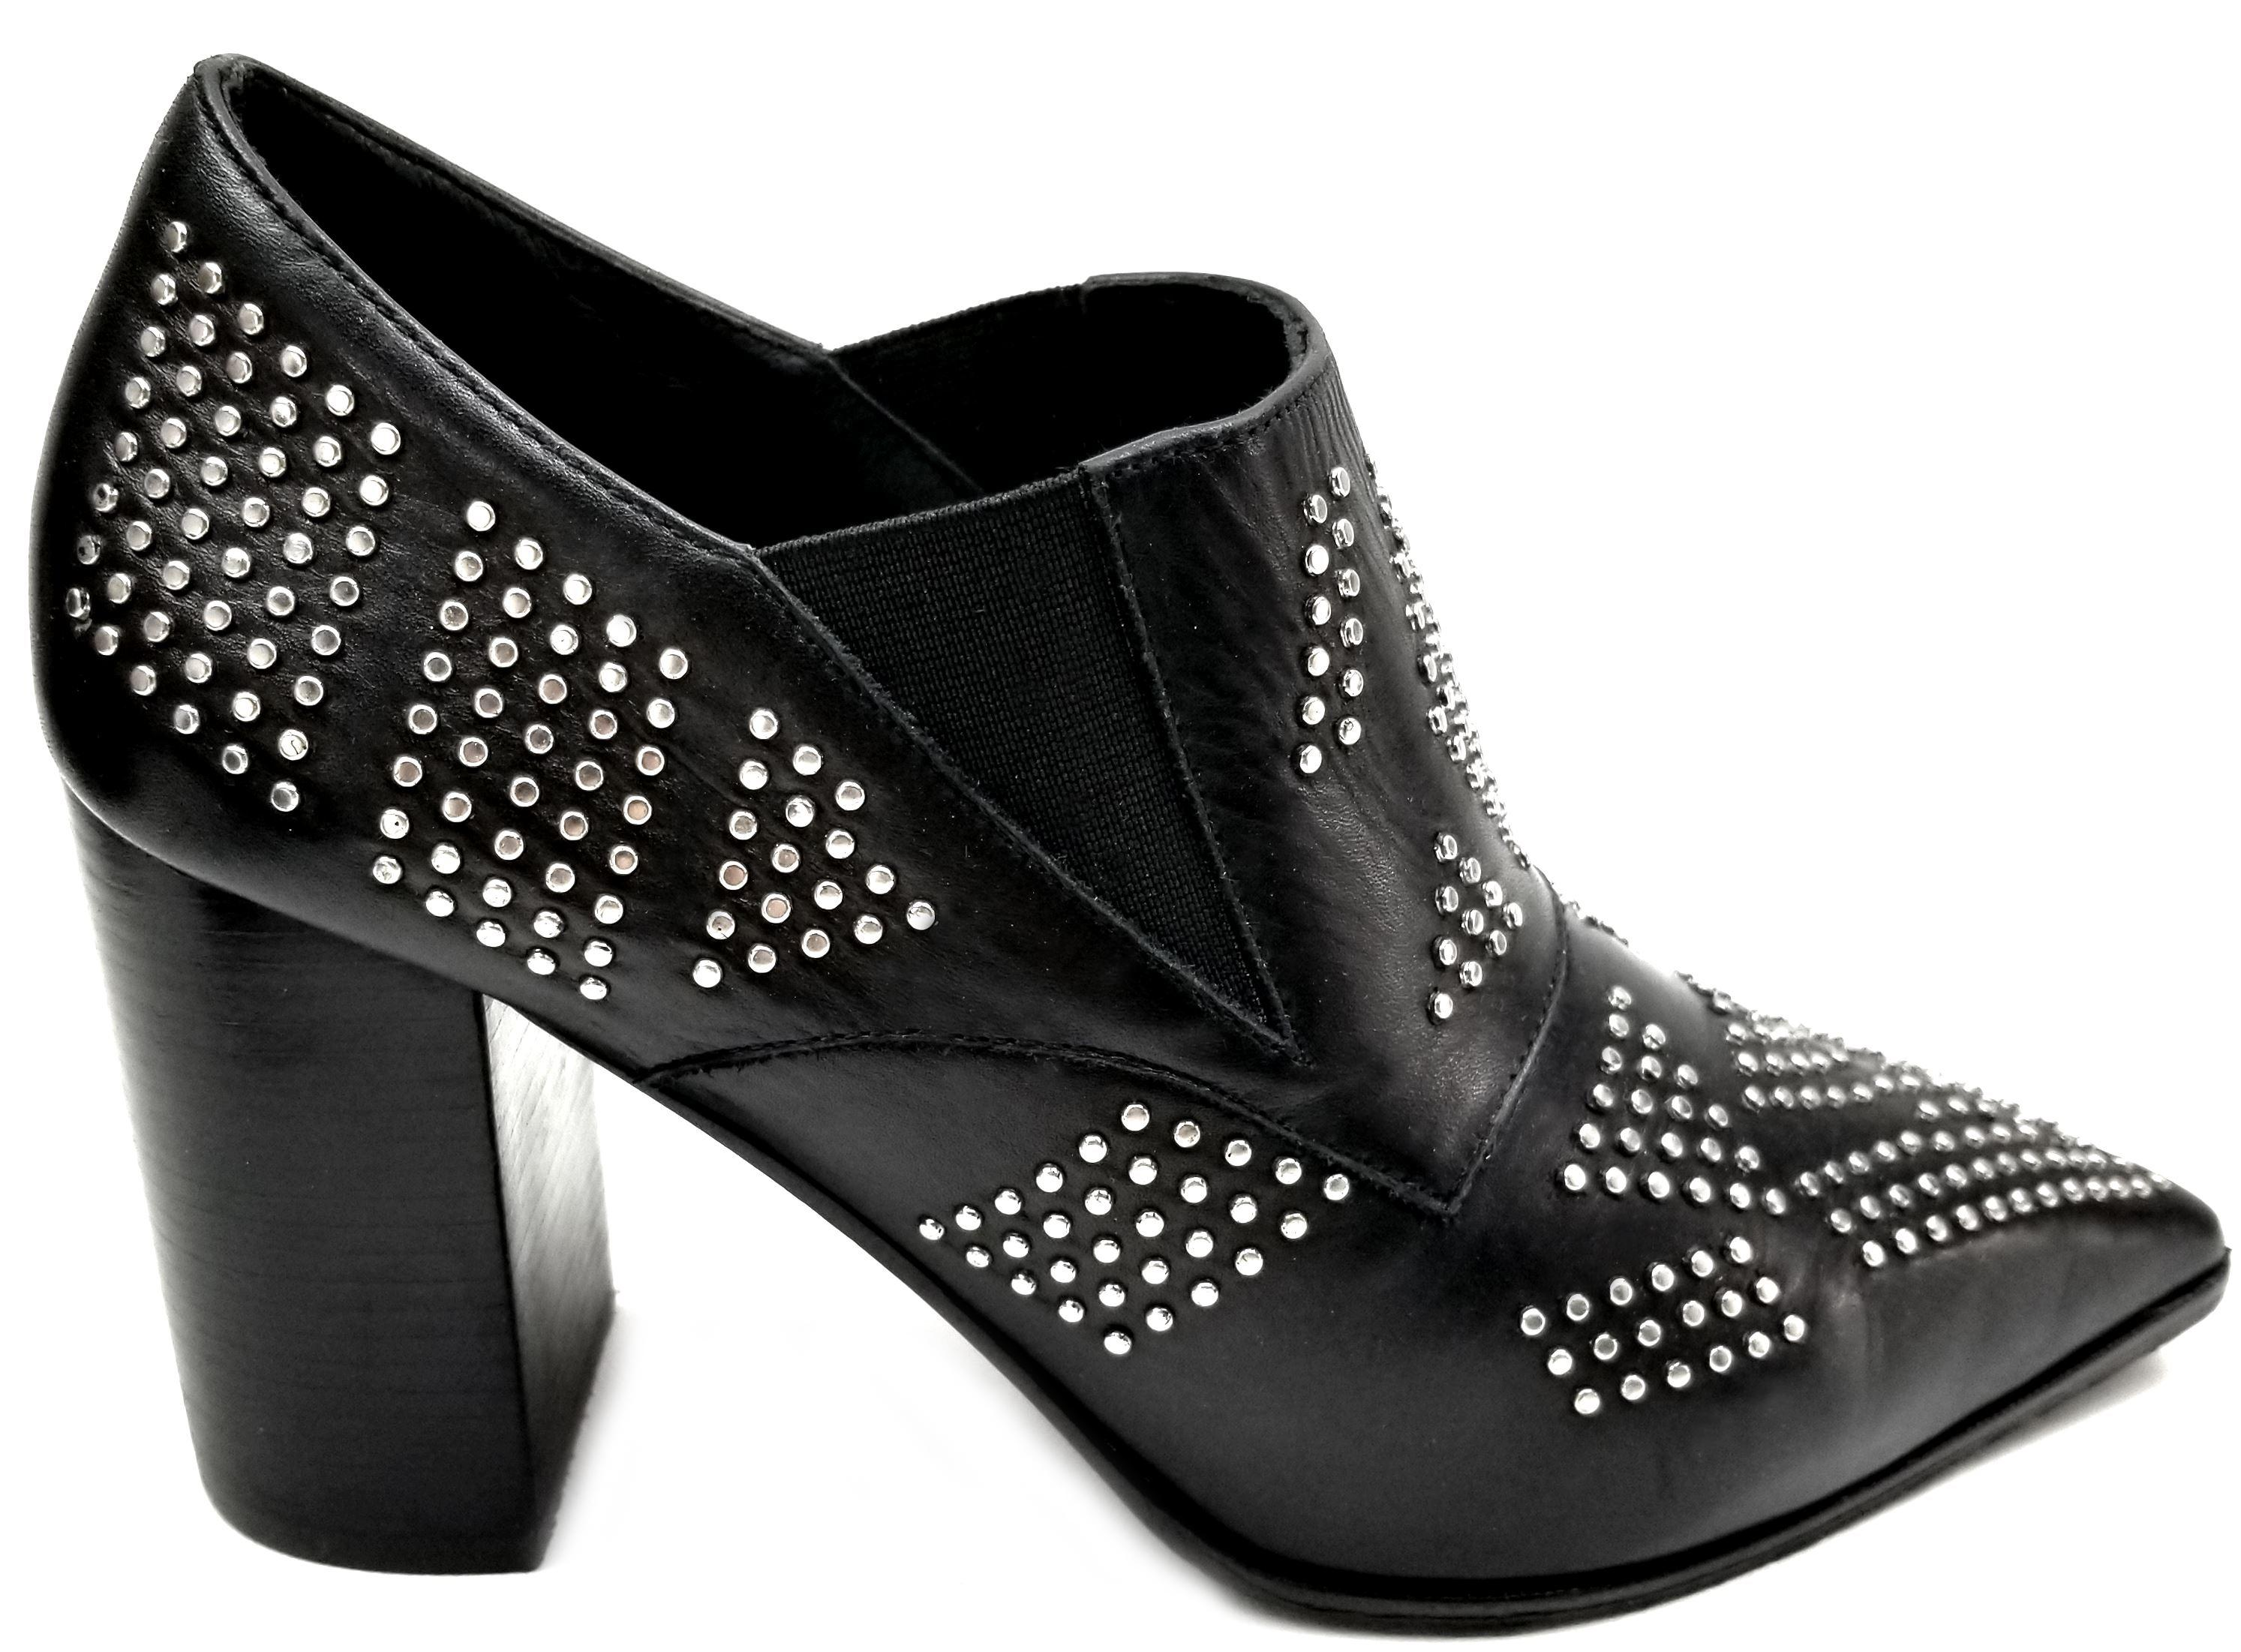 See by Chloé Black Leather Studded Ankle Boots/Booties Size EU 39.5 (Approx. US 9.5) Regular (M, B)